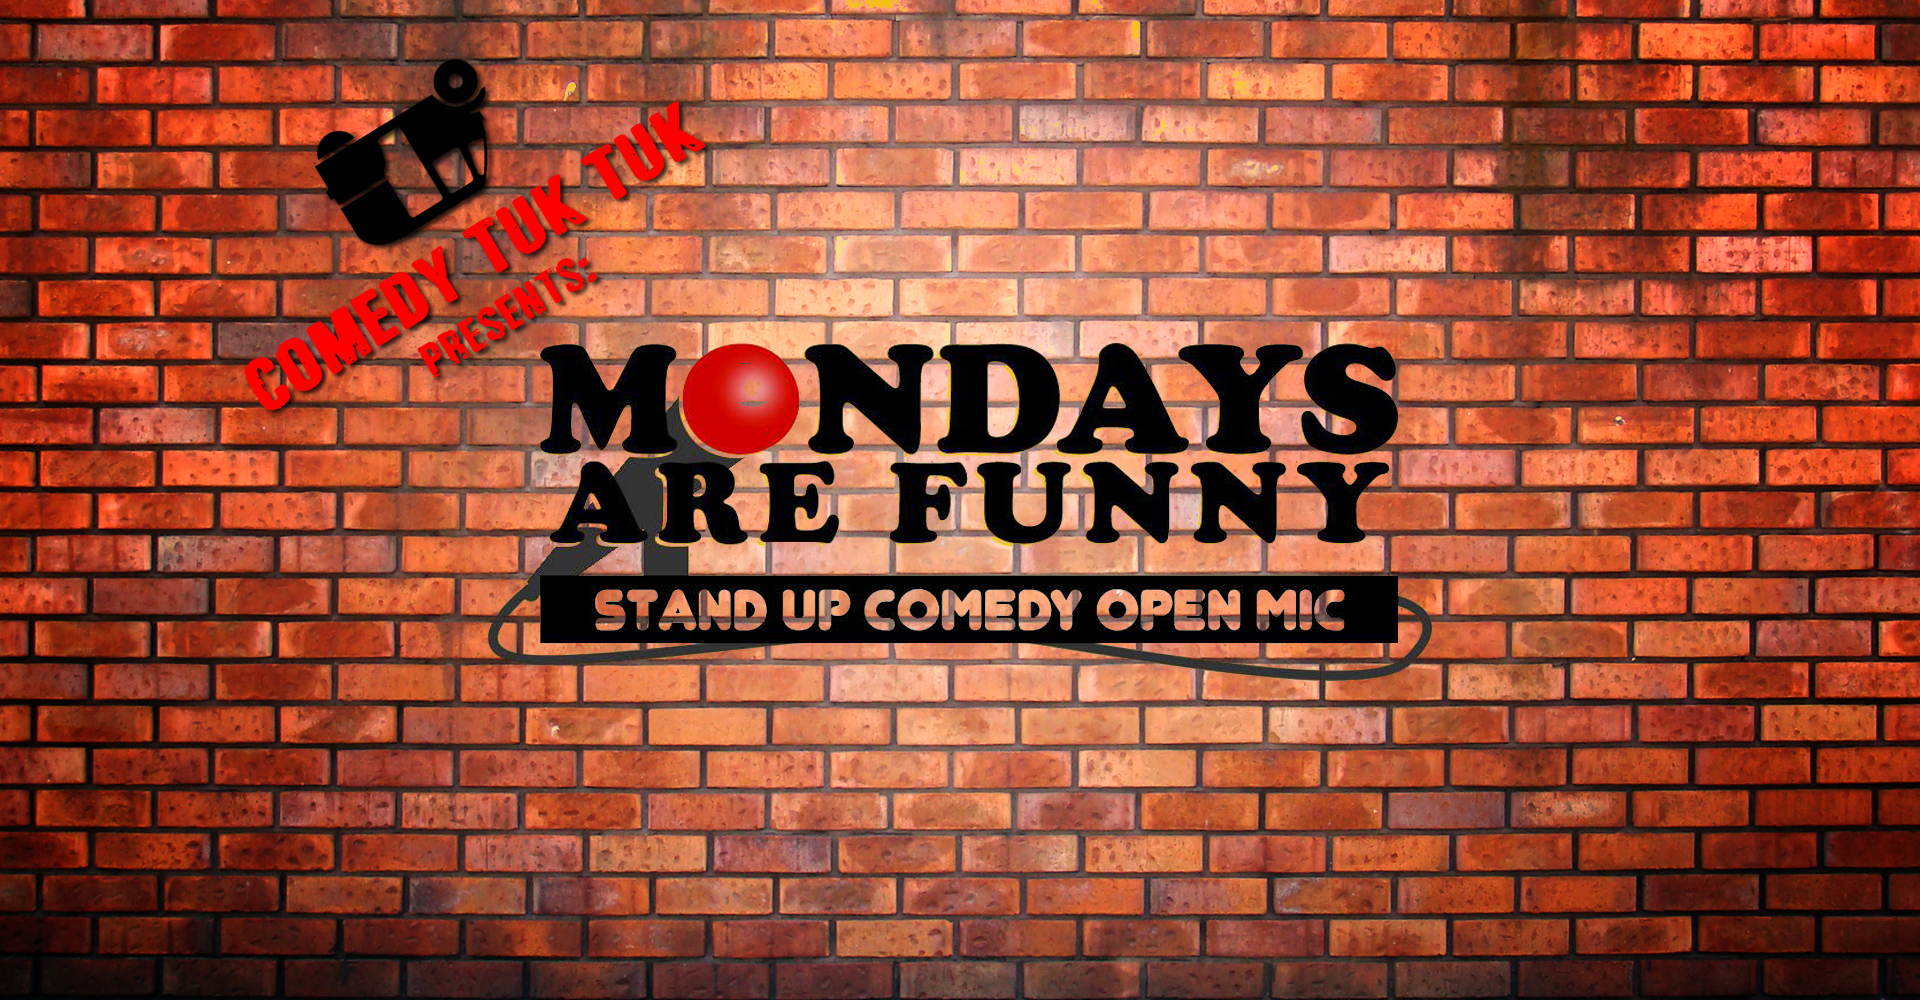 Mondays Are Funny Stand Up Comedy Open Mic